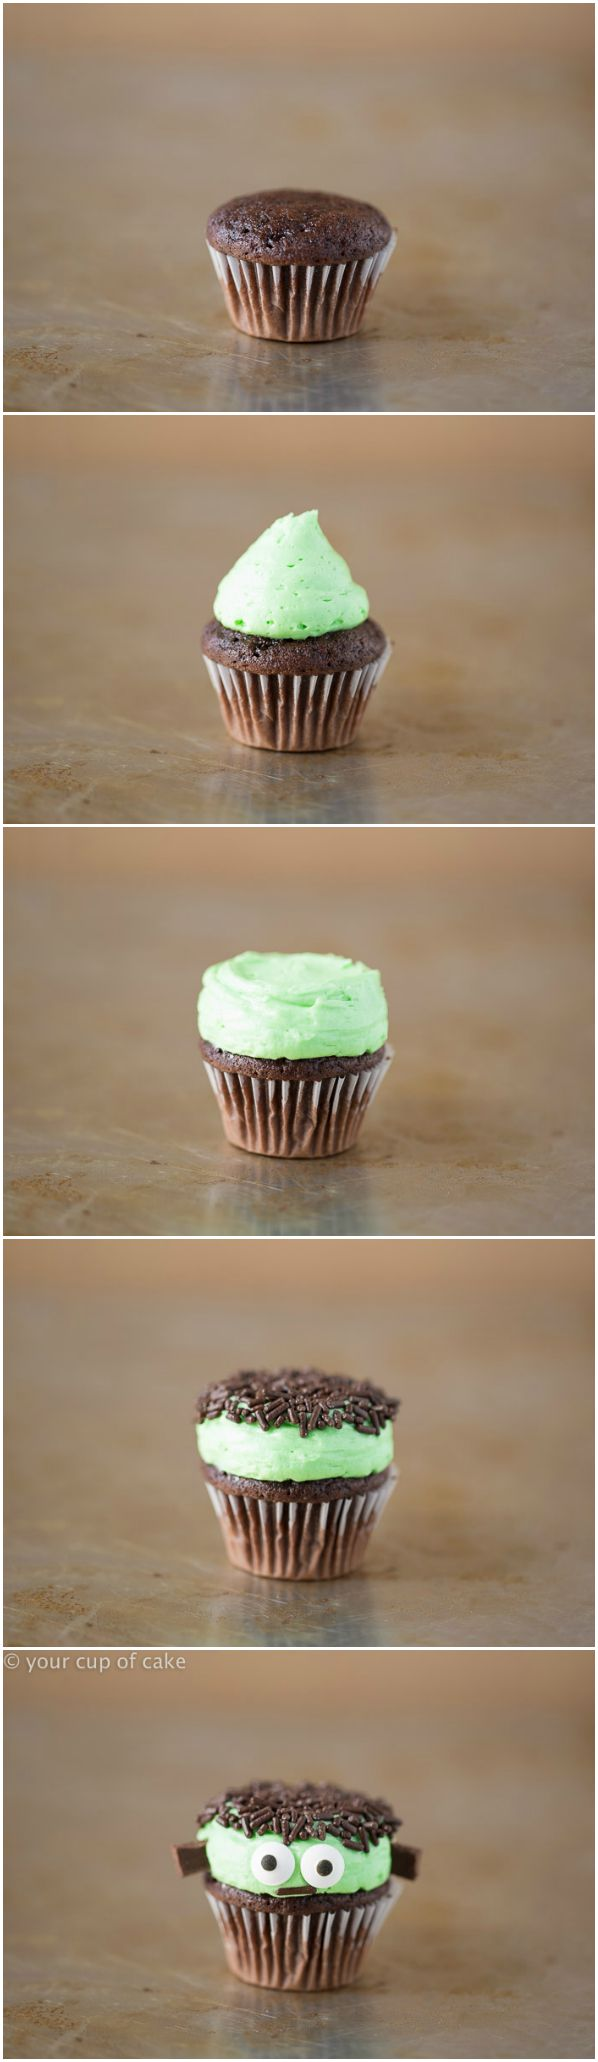 How to make mini Frankenstein cupcakes!